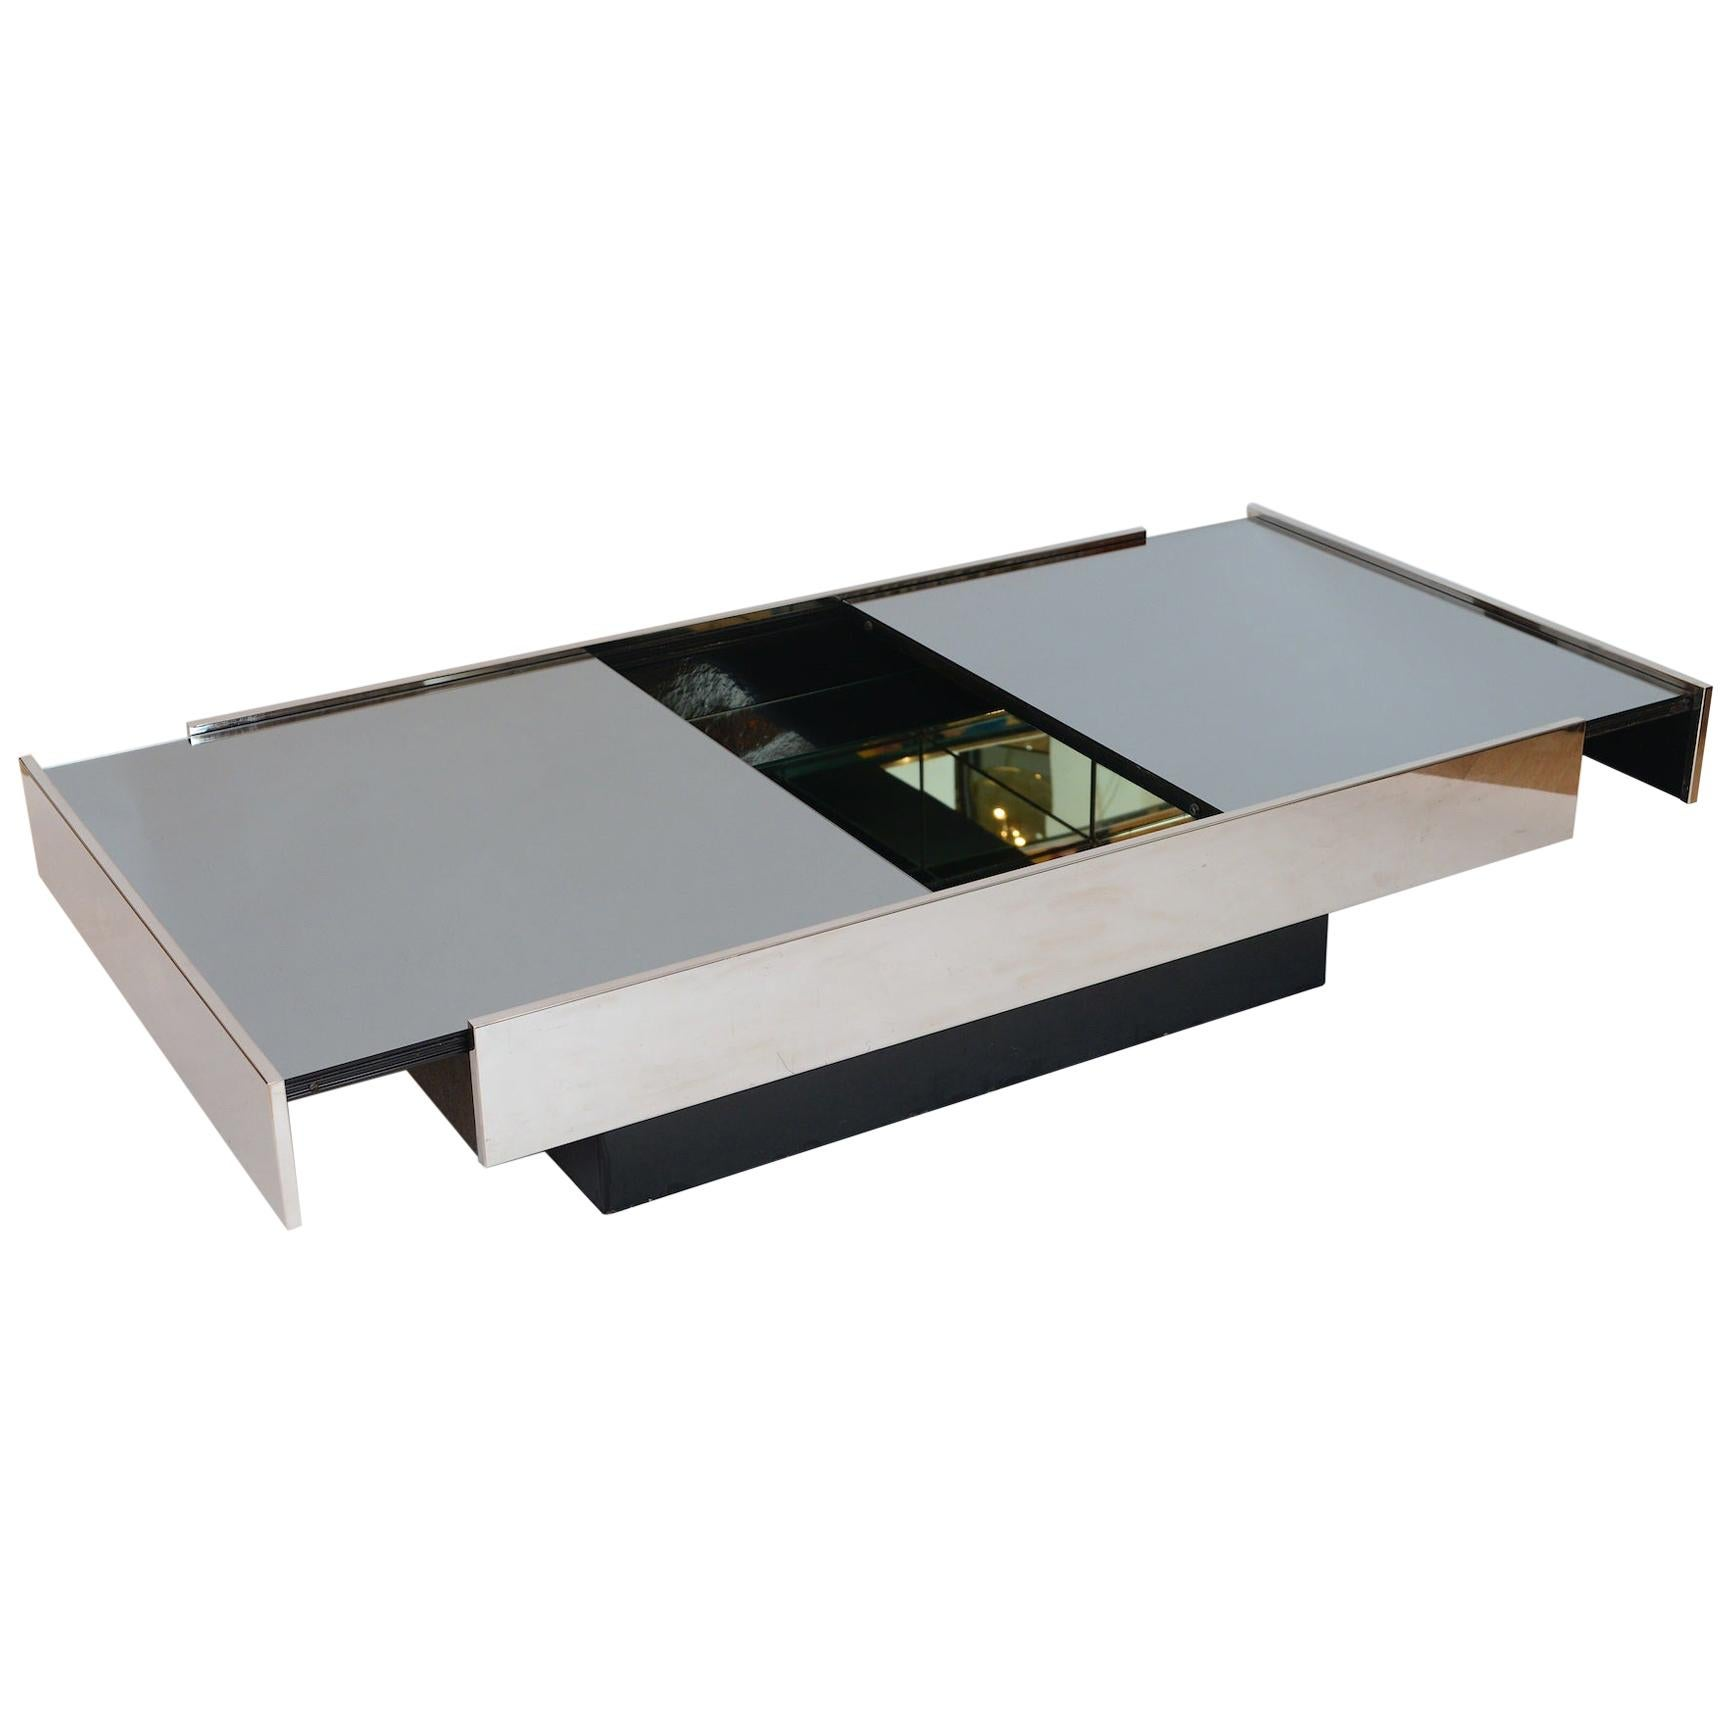 Willy Rizzo Mirrored Bar / Table, circa 1970